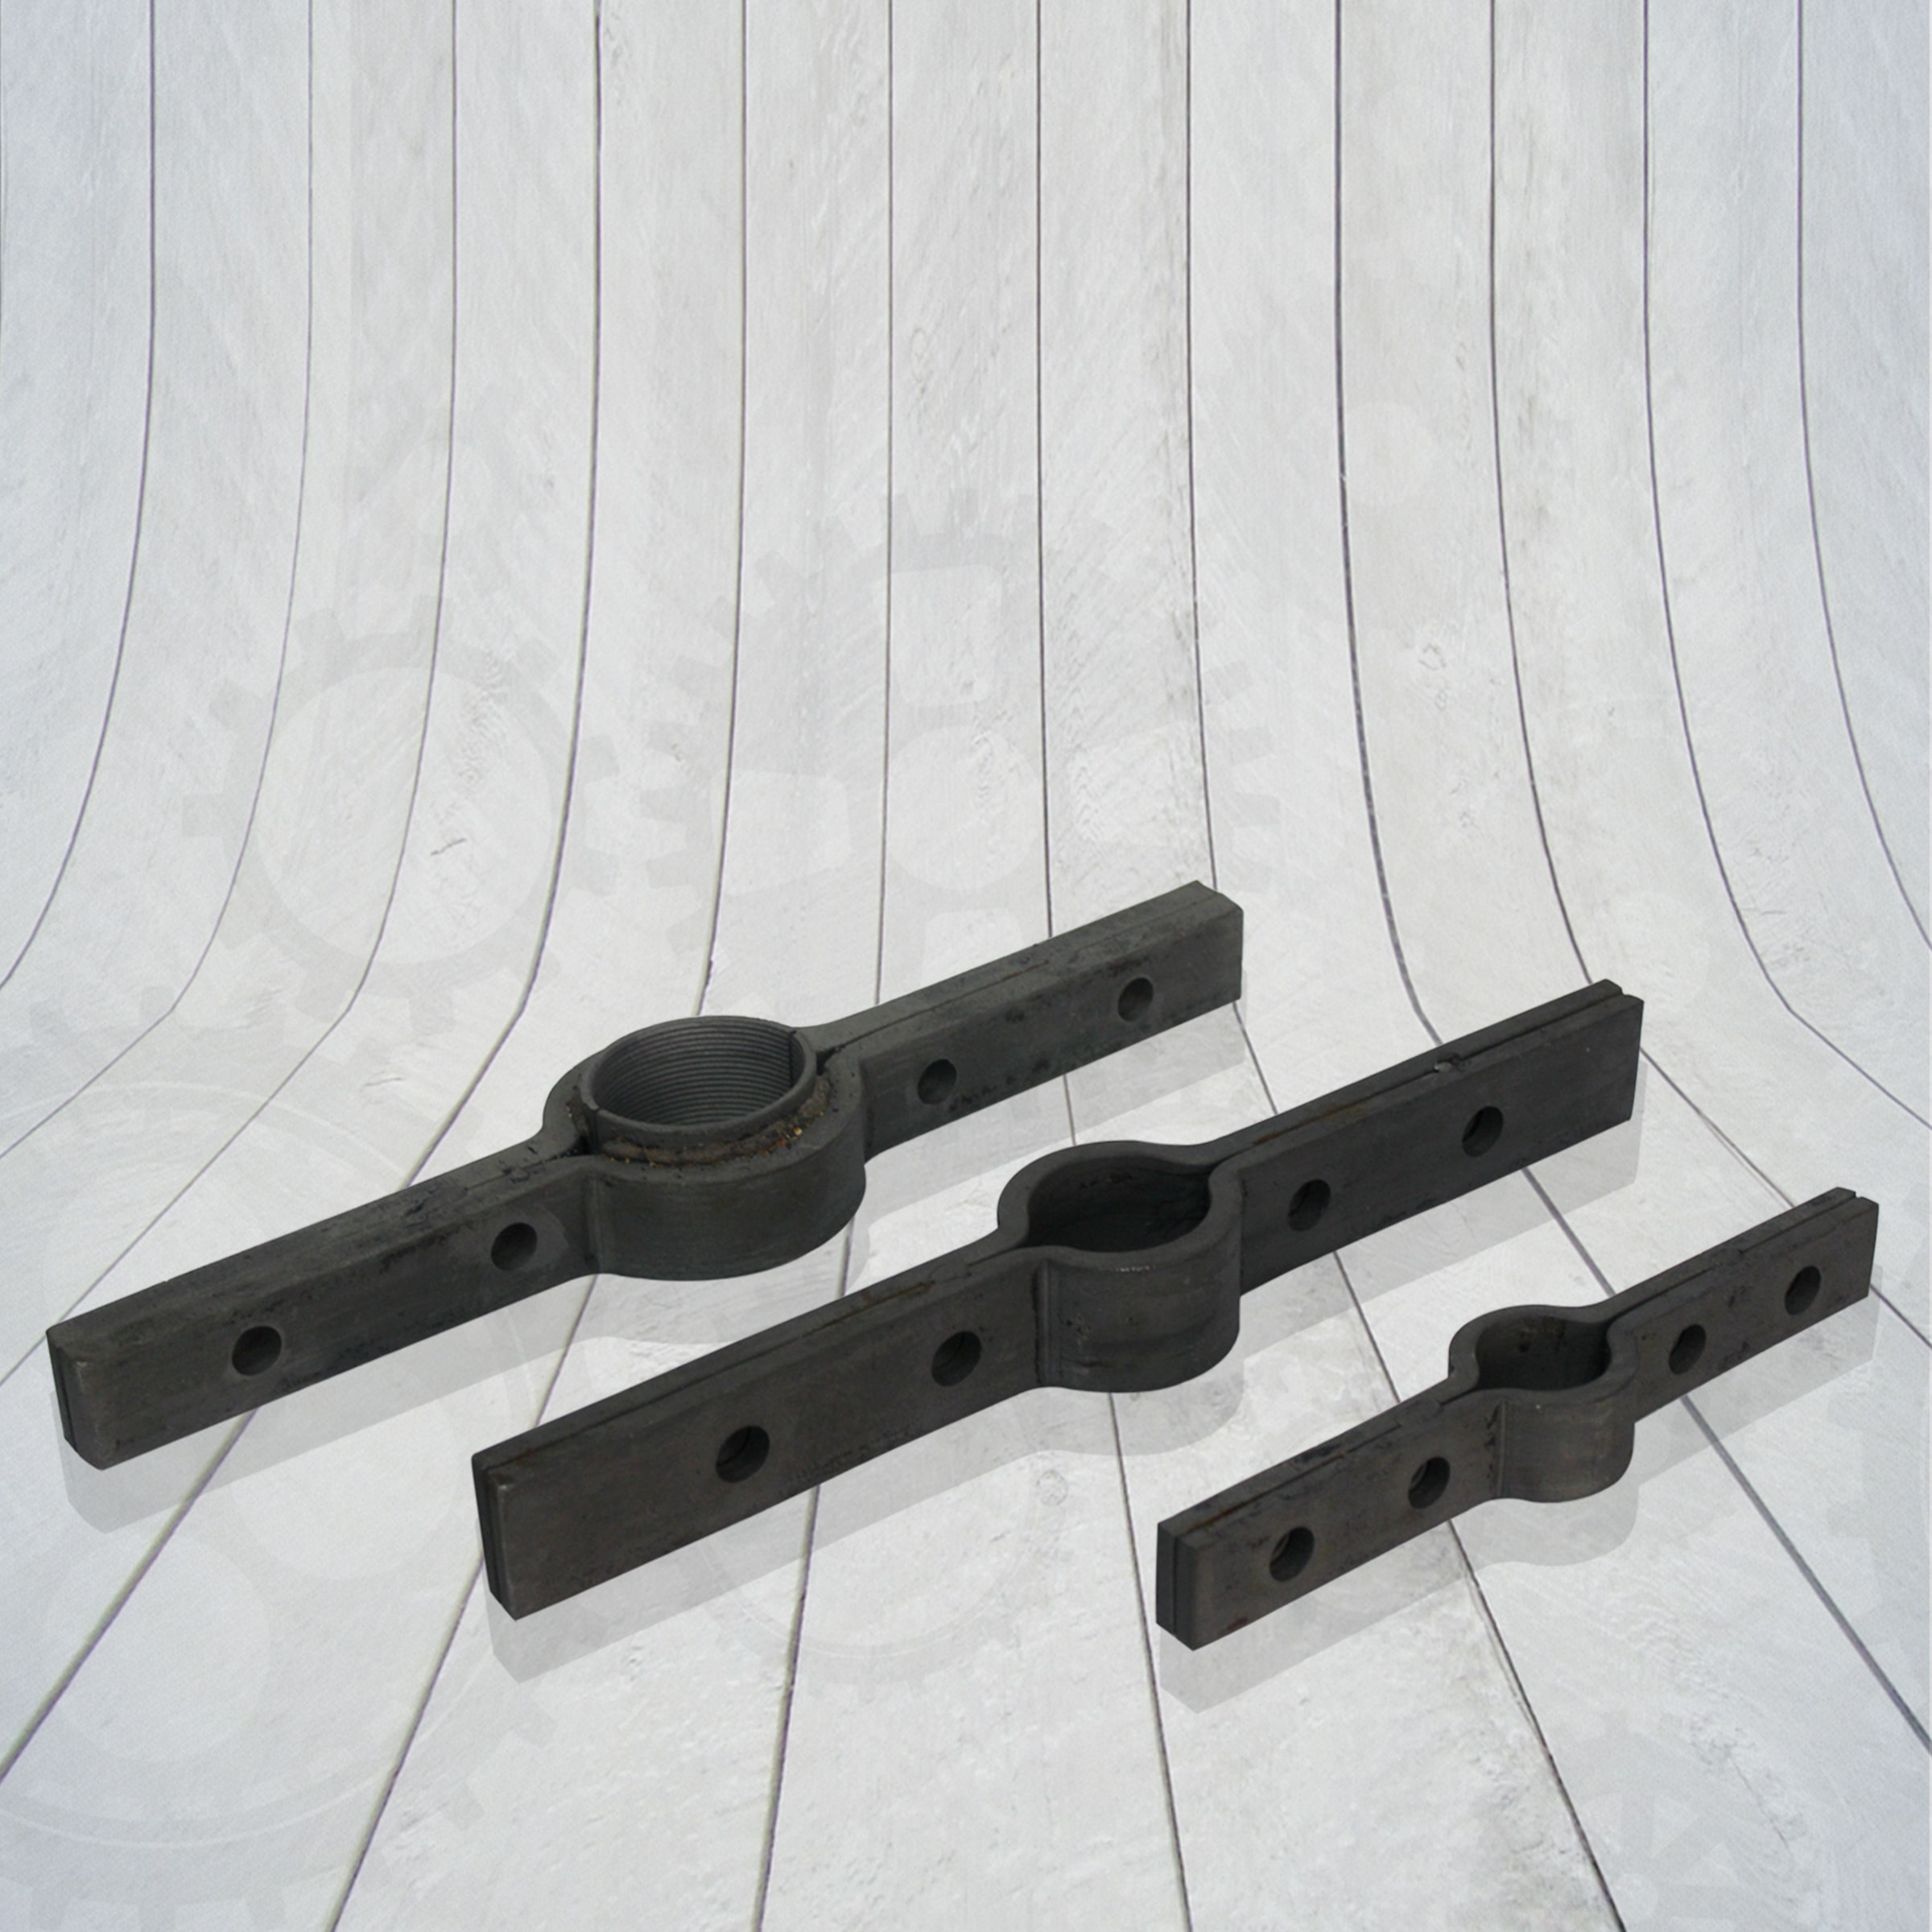 Submersible Clamp Manufacturer in India